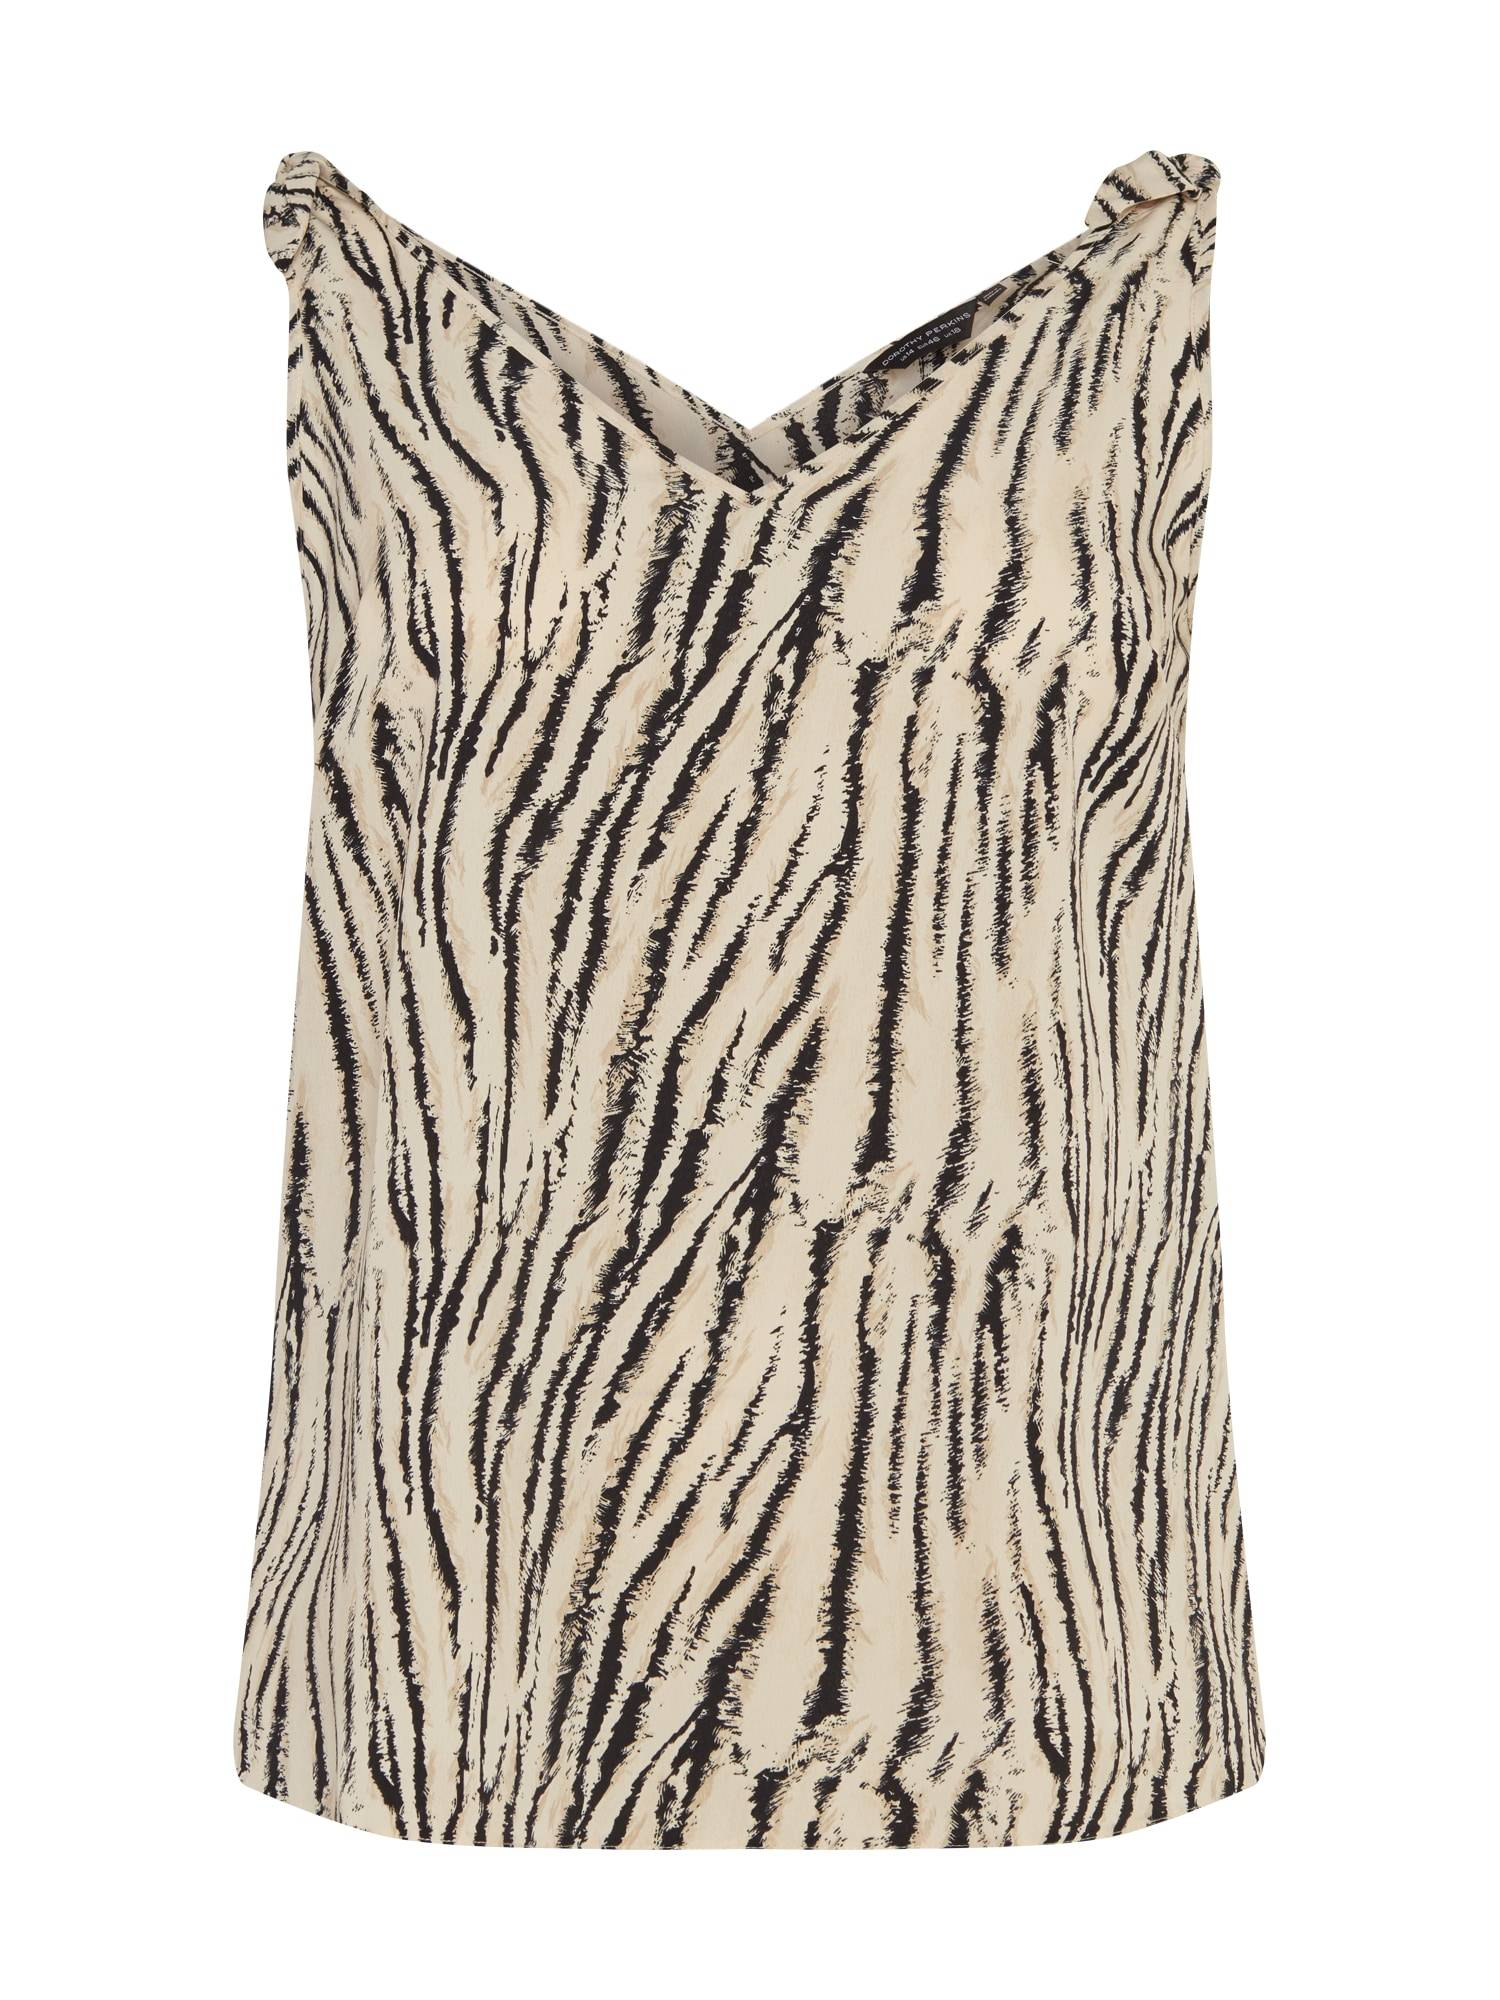 Dorothy Perkins Curve Haut  - Beige - Taille: 24 - female